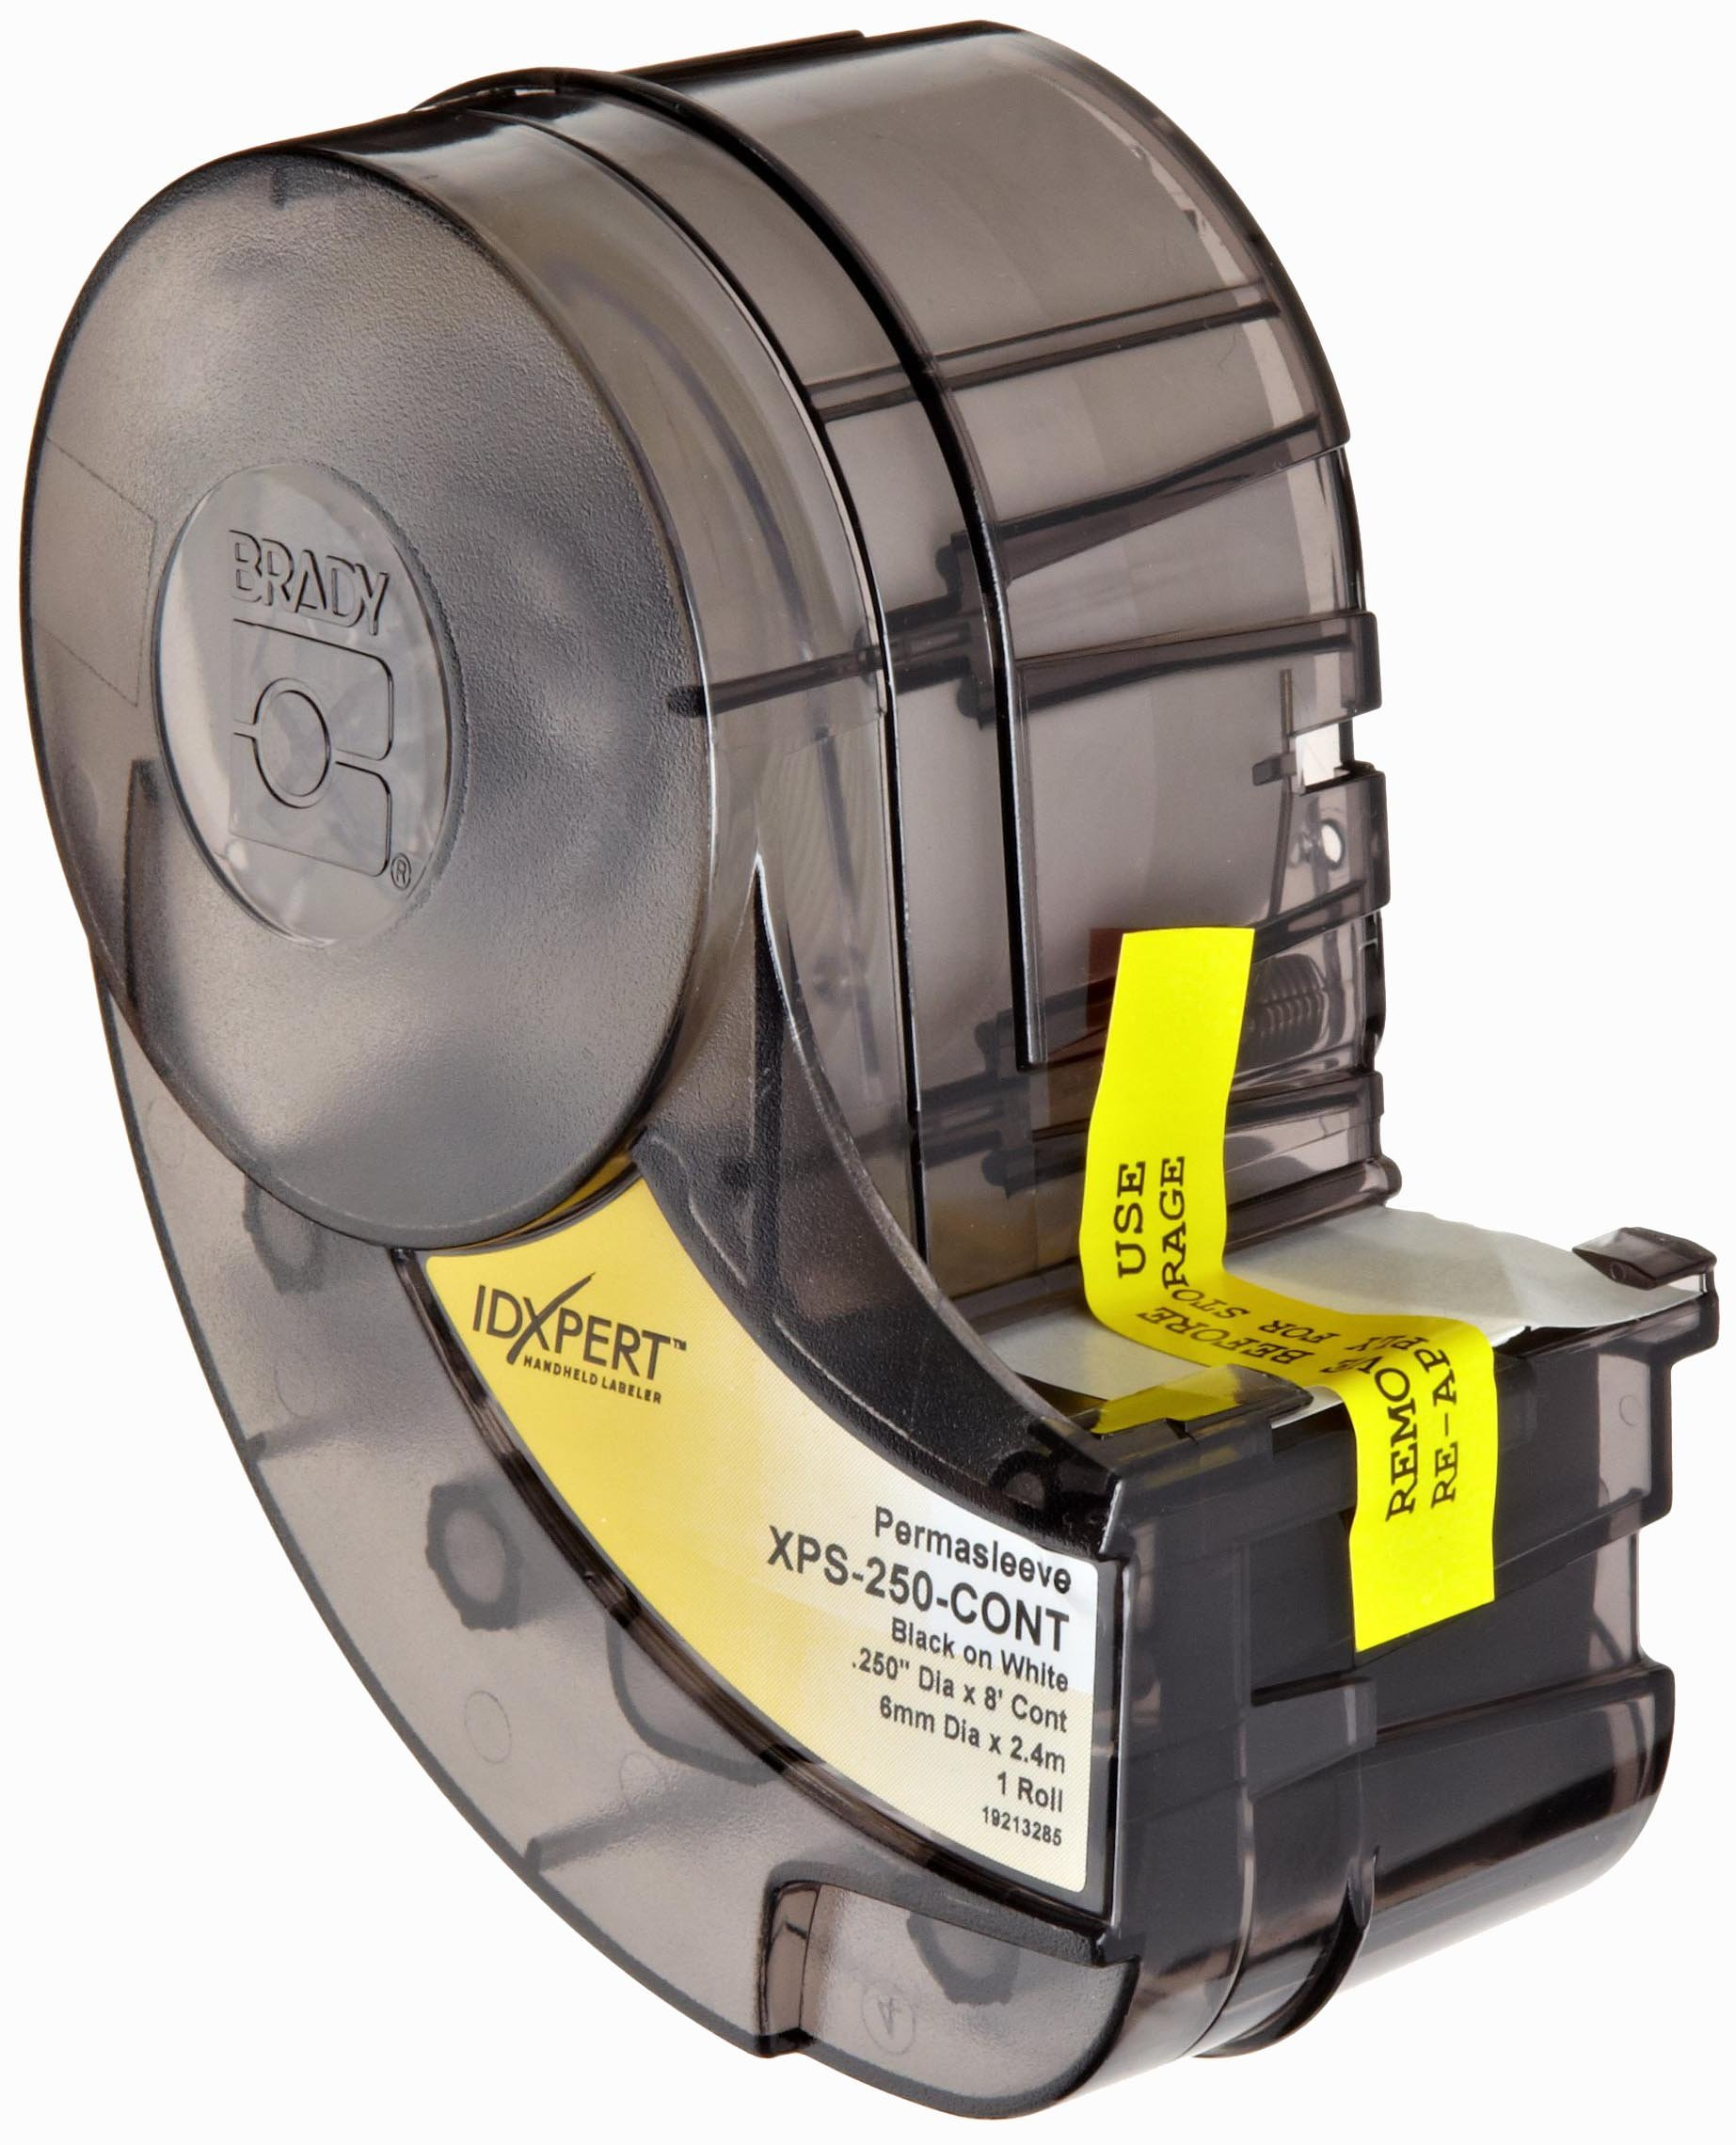 Brady XPS-250-CONT IDXPERT PermaSleeve 0.439'' Height, 1.015'' Width, B-342 PermaSleeve Heat-Shrink Polyolefin, Black On White Color Wire Marker Sleeves